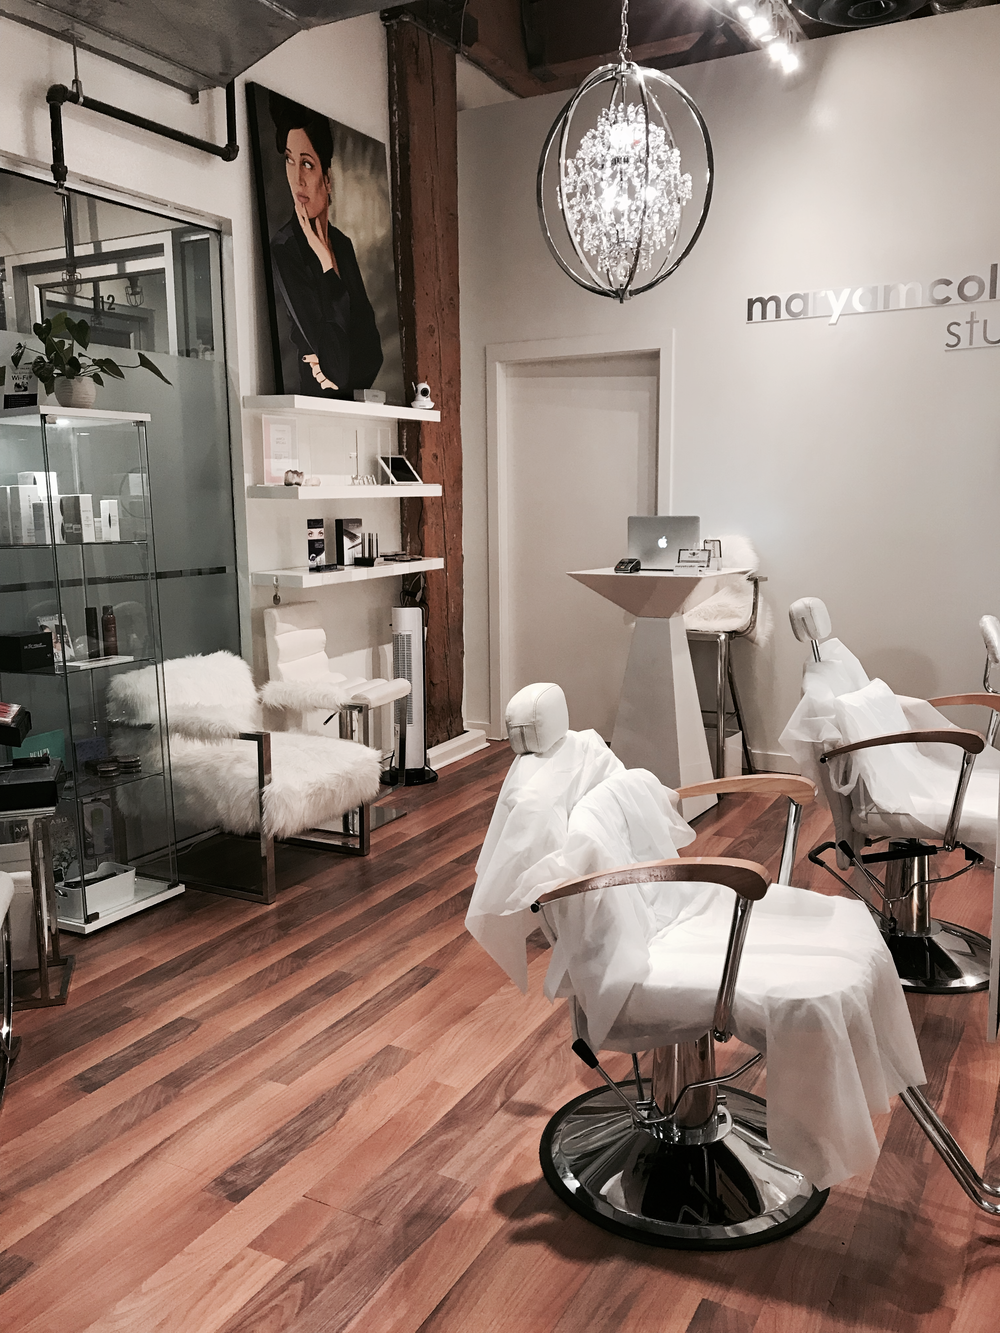 maryam collahi studio brow tint threading microblading downtown vancouver yaletown british colombia beauty blogger review